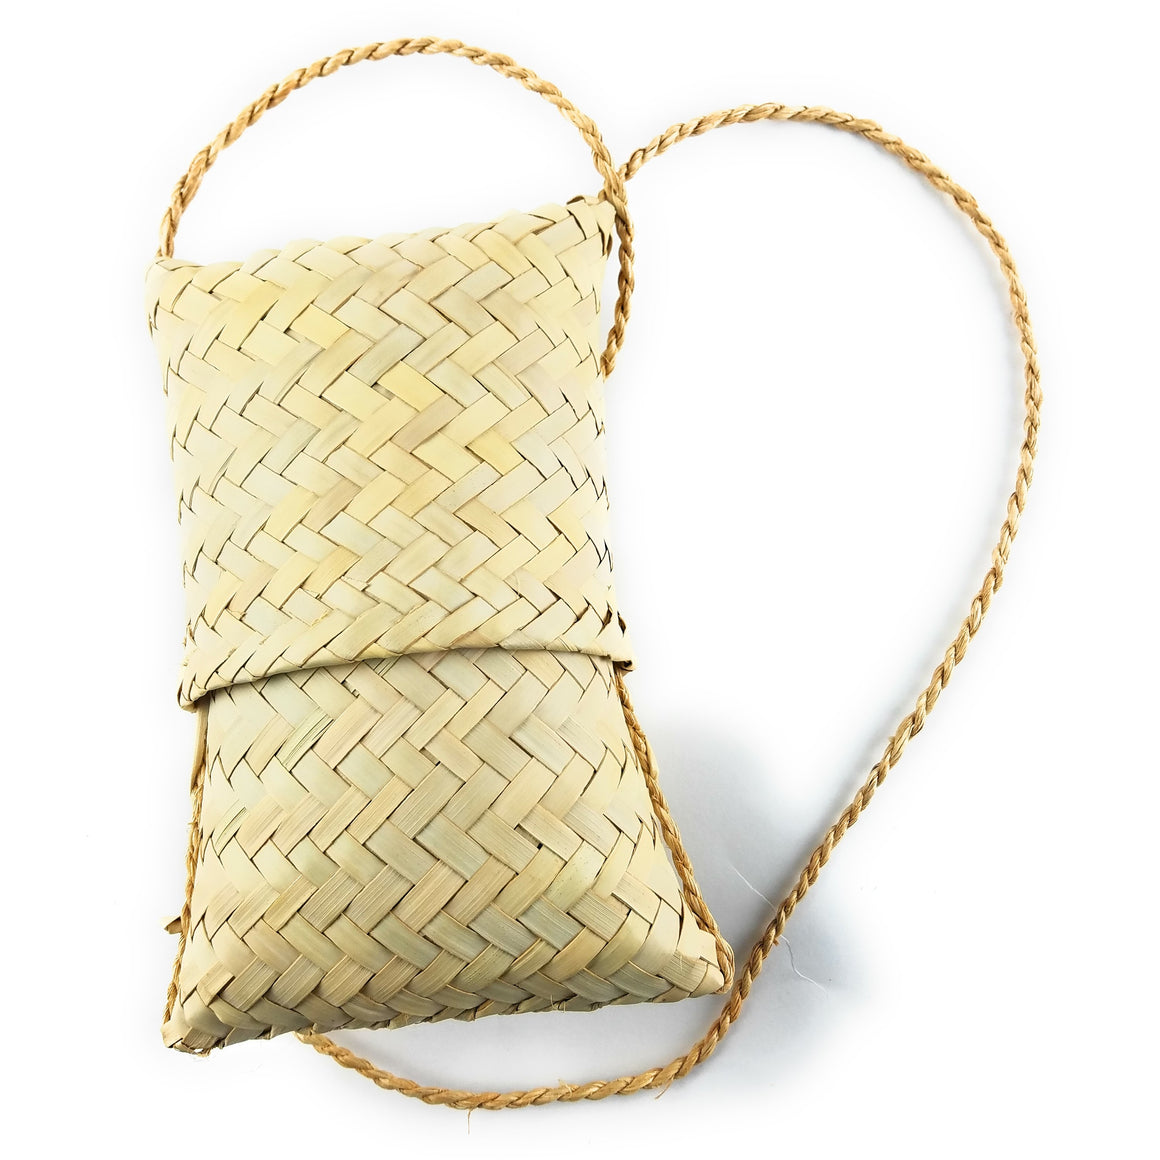 Wicker Tote Purse